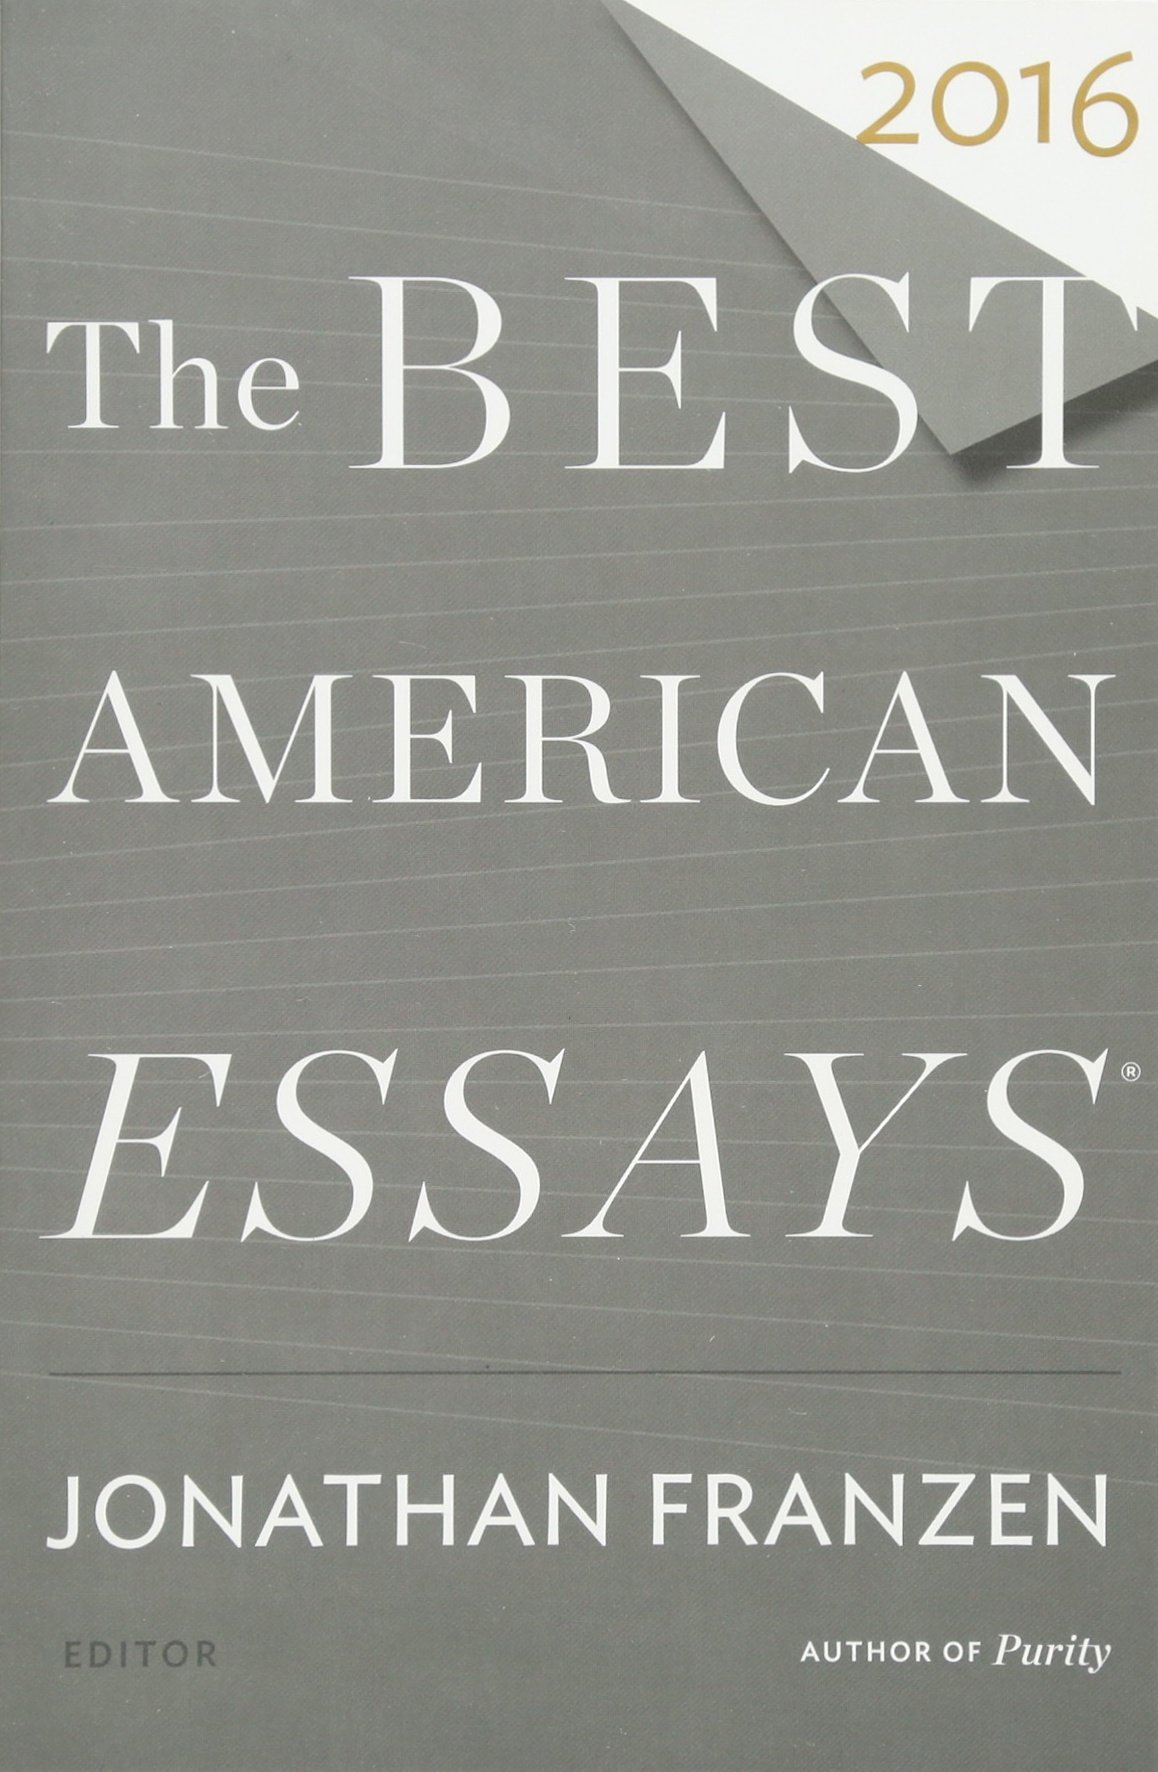 001 71a6bhsgsdl Essay Example Best American Essays Unique 2016 The Free Pdf Notables Full